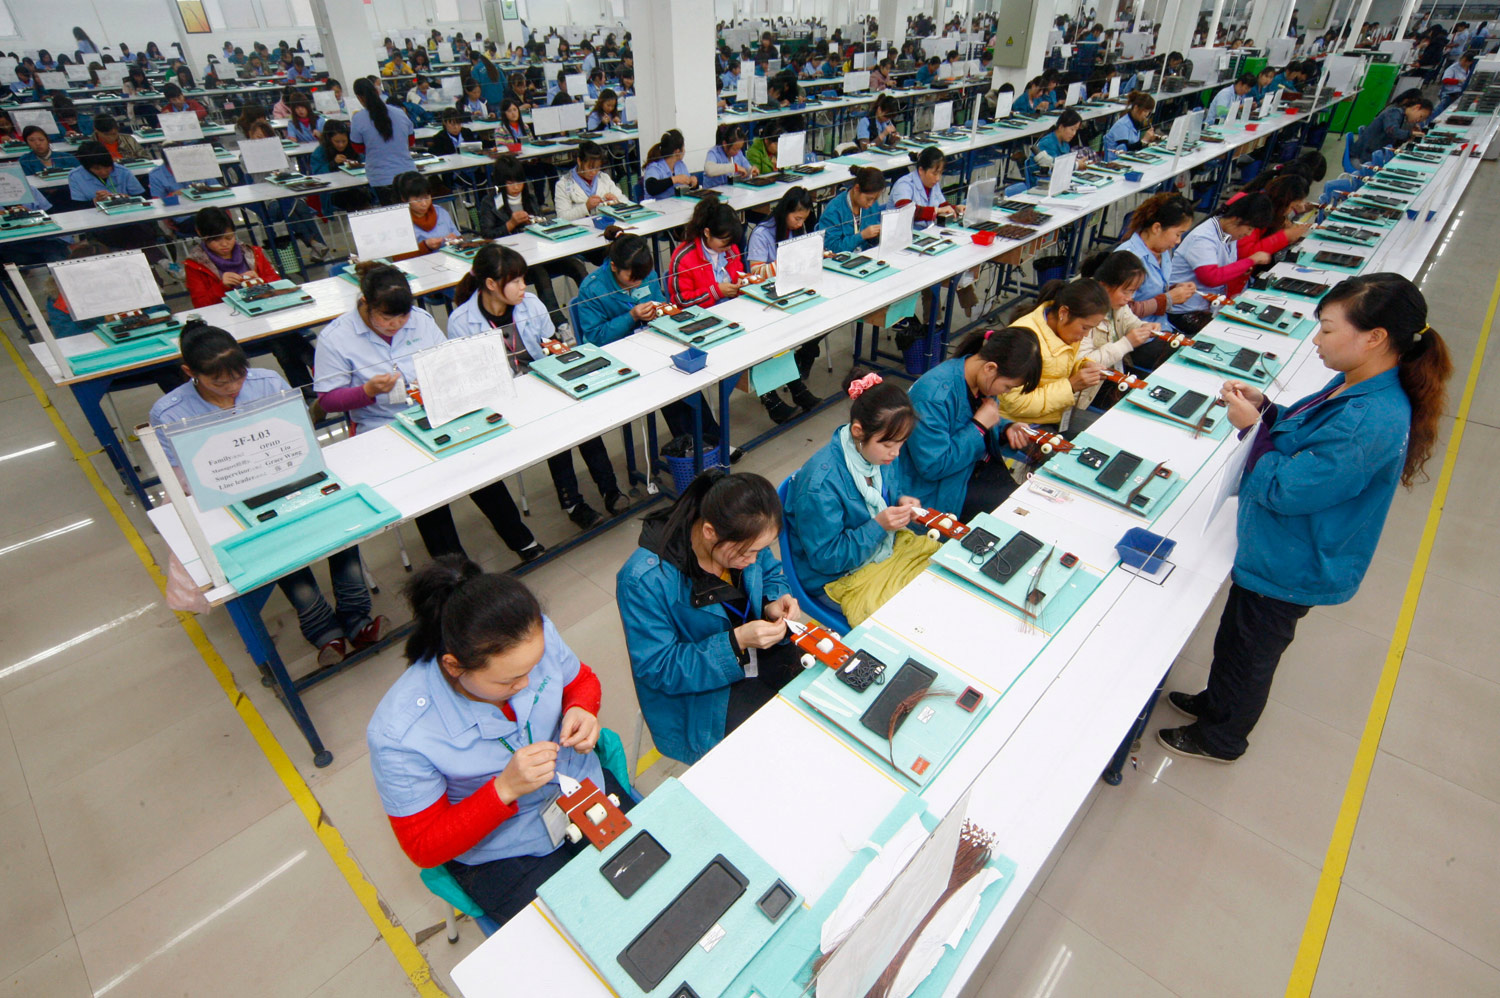 Do-You-Think-Products-Made-in-China-Should-Be-Called-'US-Exports'